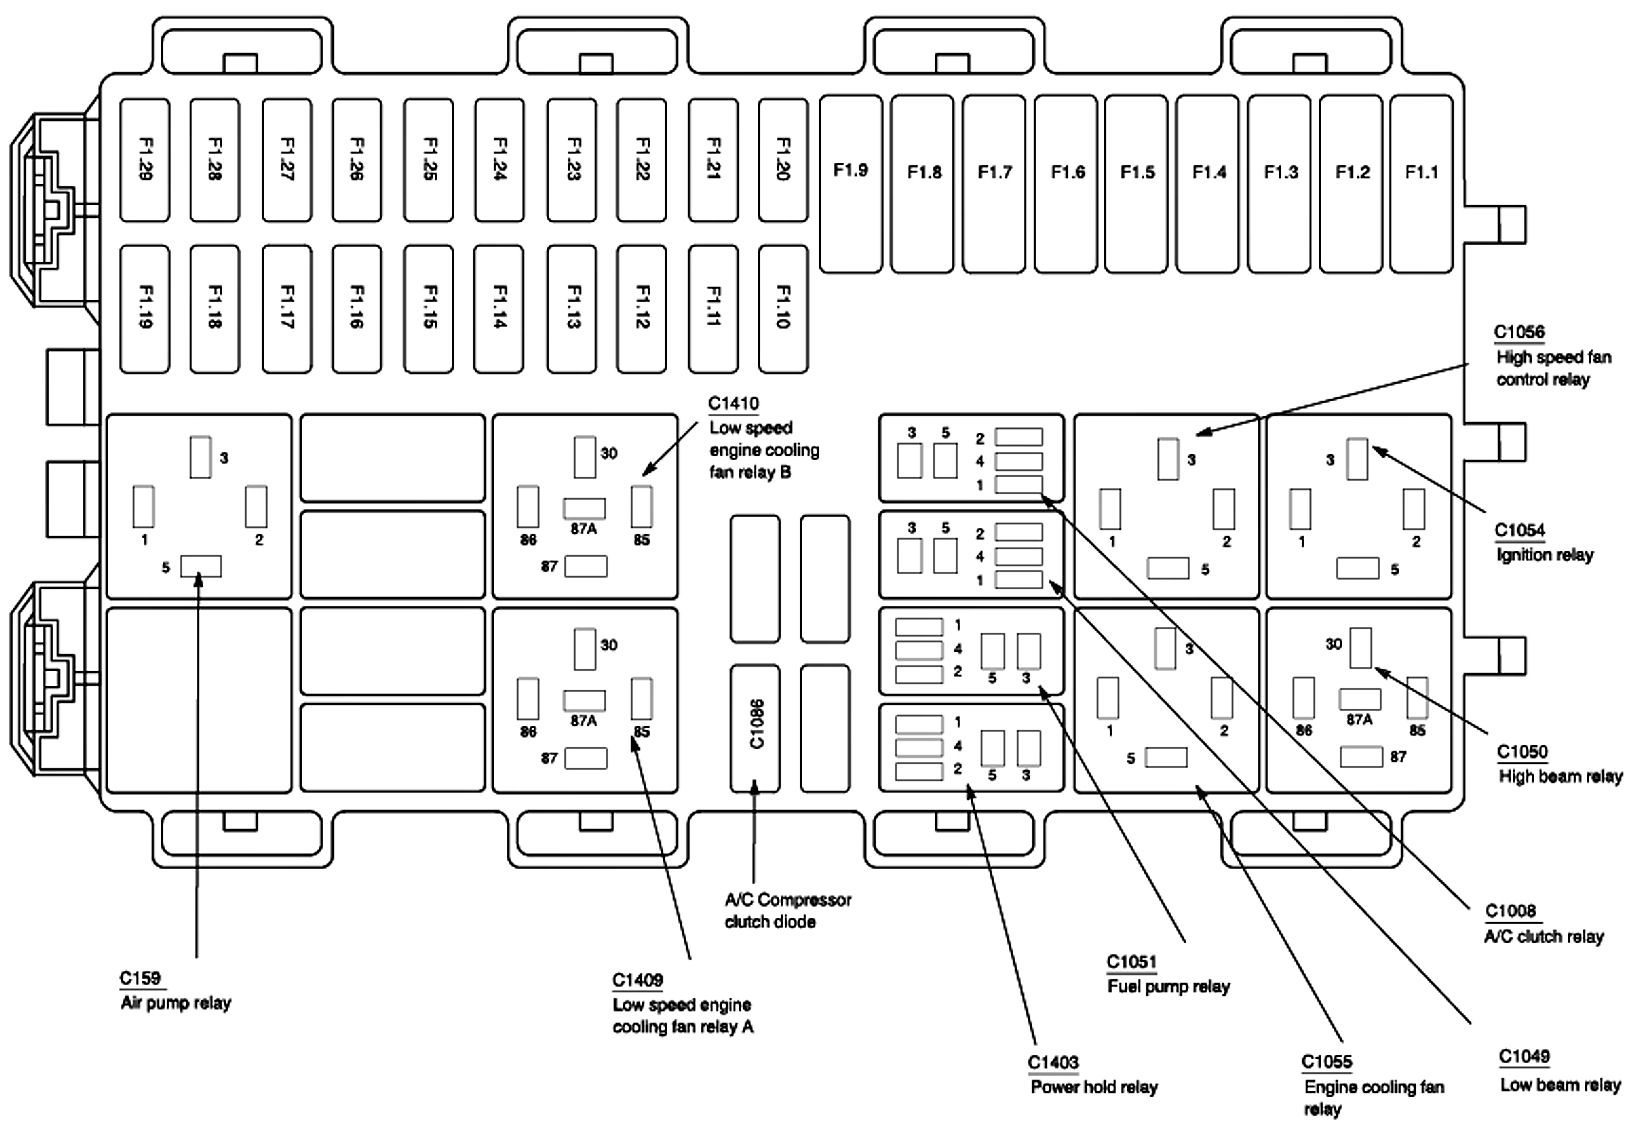 fuse box for ford focus ford focus fuse box diagram image details fuse box for ford focus 2008 ford focus fuse box diagram image details